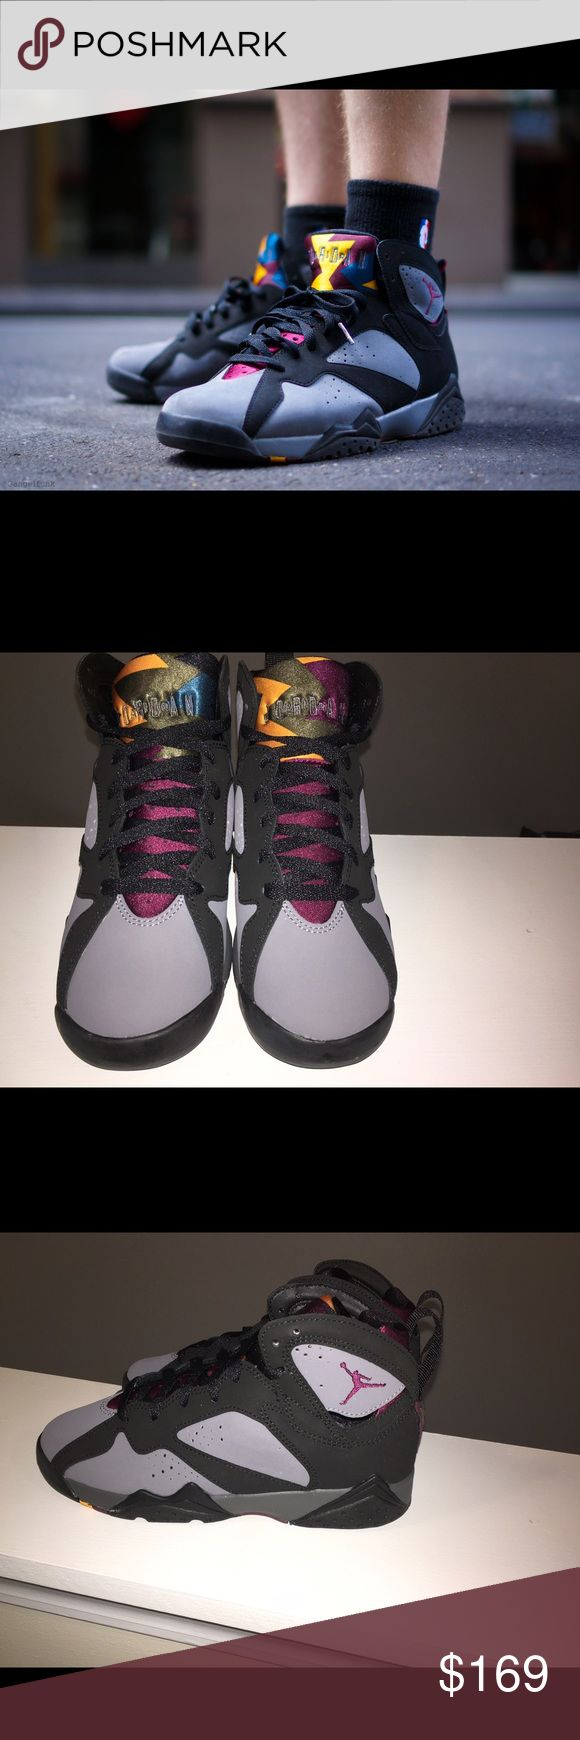 Brand New Air Jordan Retro 7 BG Bordeaux Brand New 100% Authentic Jordan Bordeaux. Sz 5 Y/ 6.5 women's. Box is missing lid. Please only submit offers via the offer button only . Low ballers will be ignored. No trades. Nike Shoes Sneakers